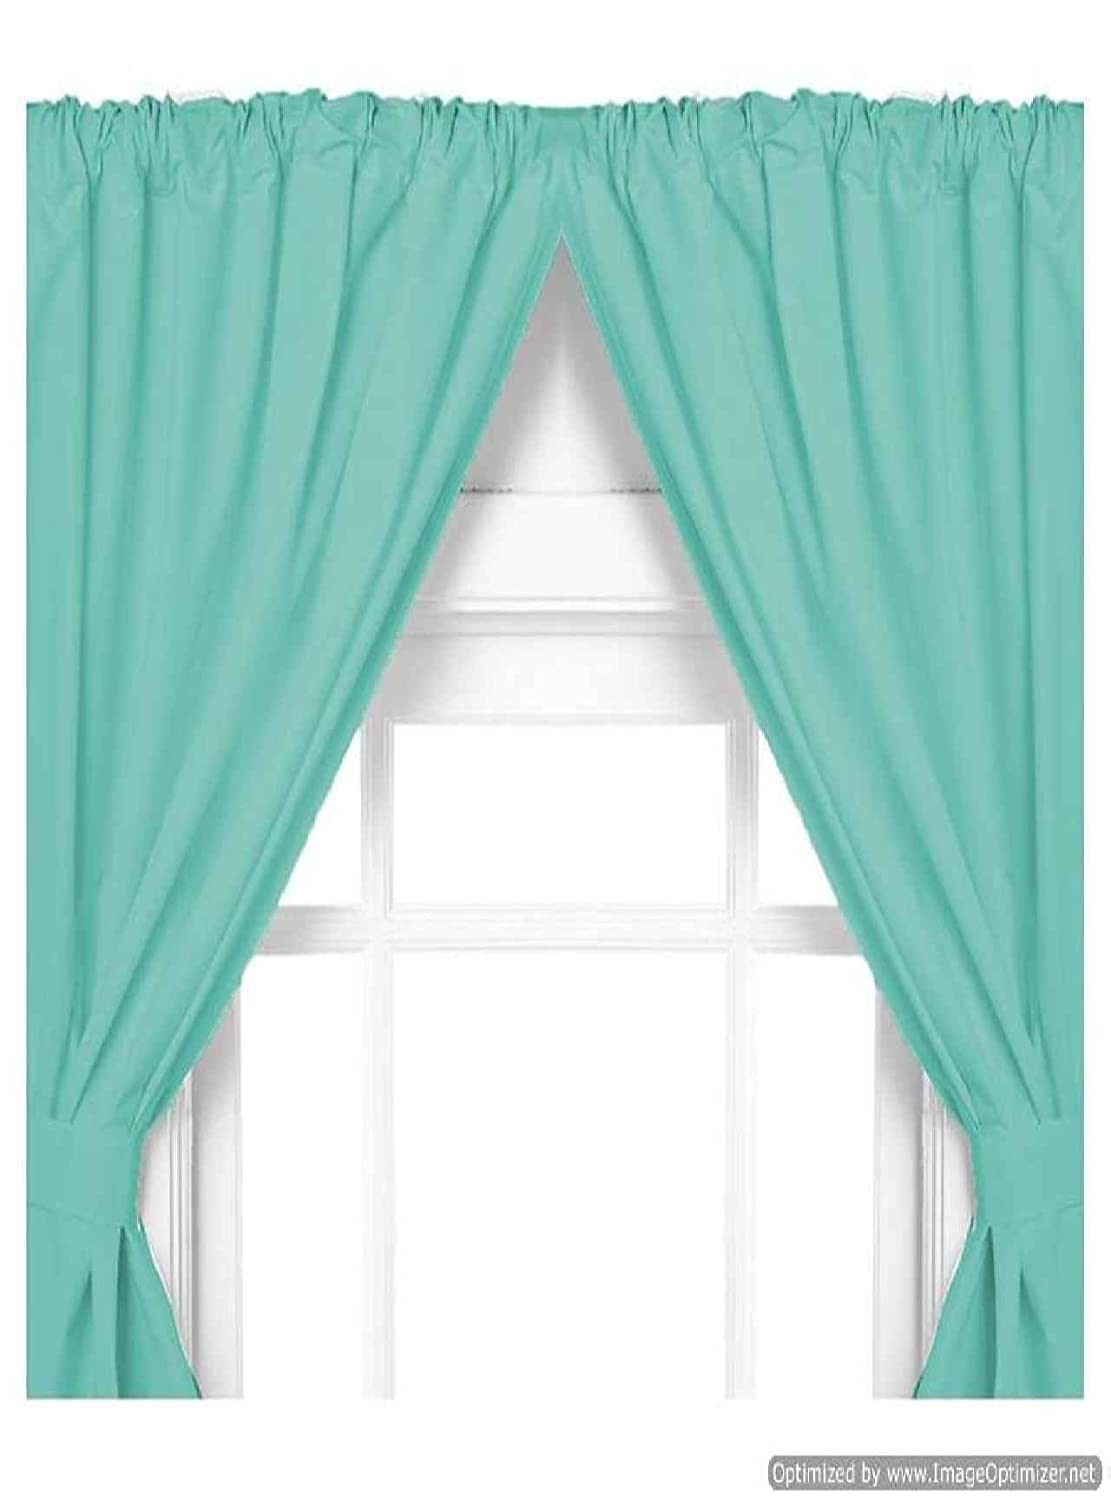 bradley window corporation curtains products vinyl accessories curtain specialty shower antimicrobial